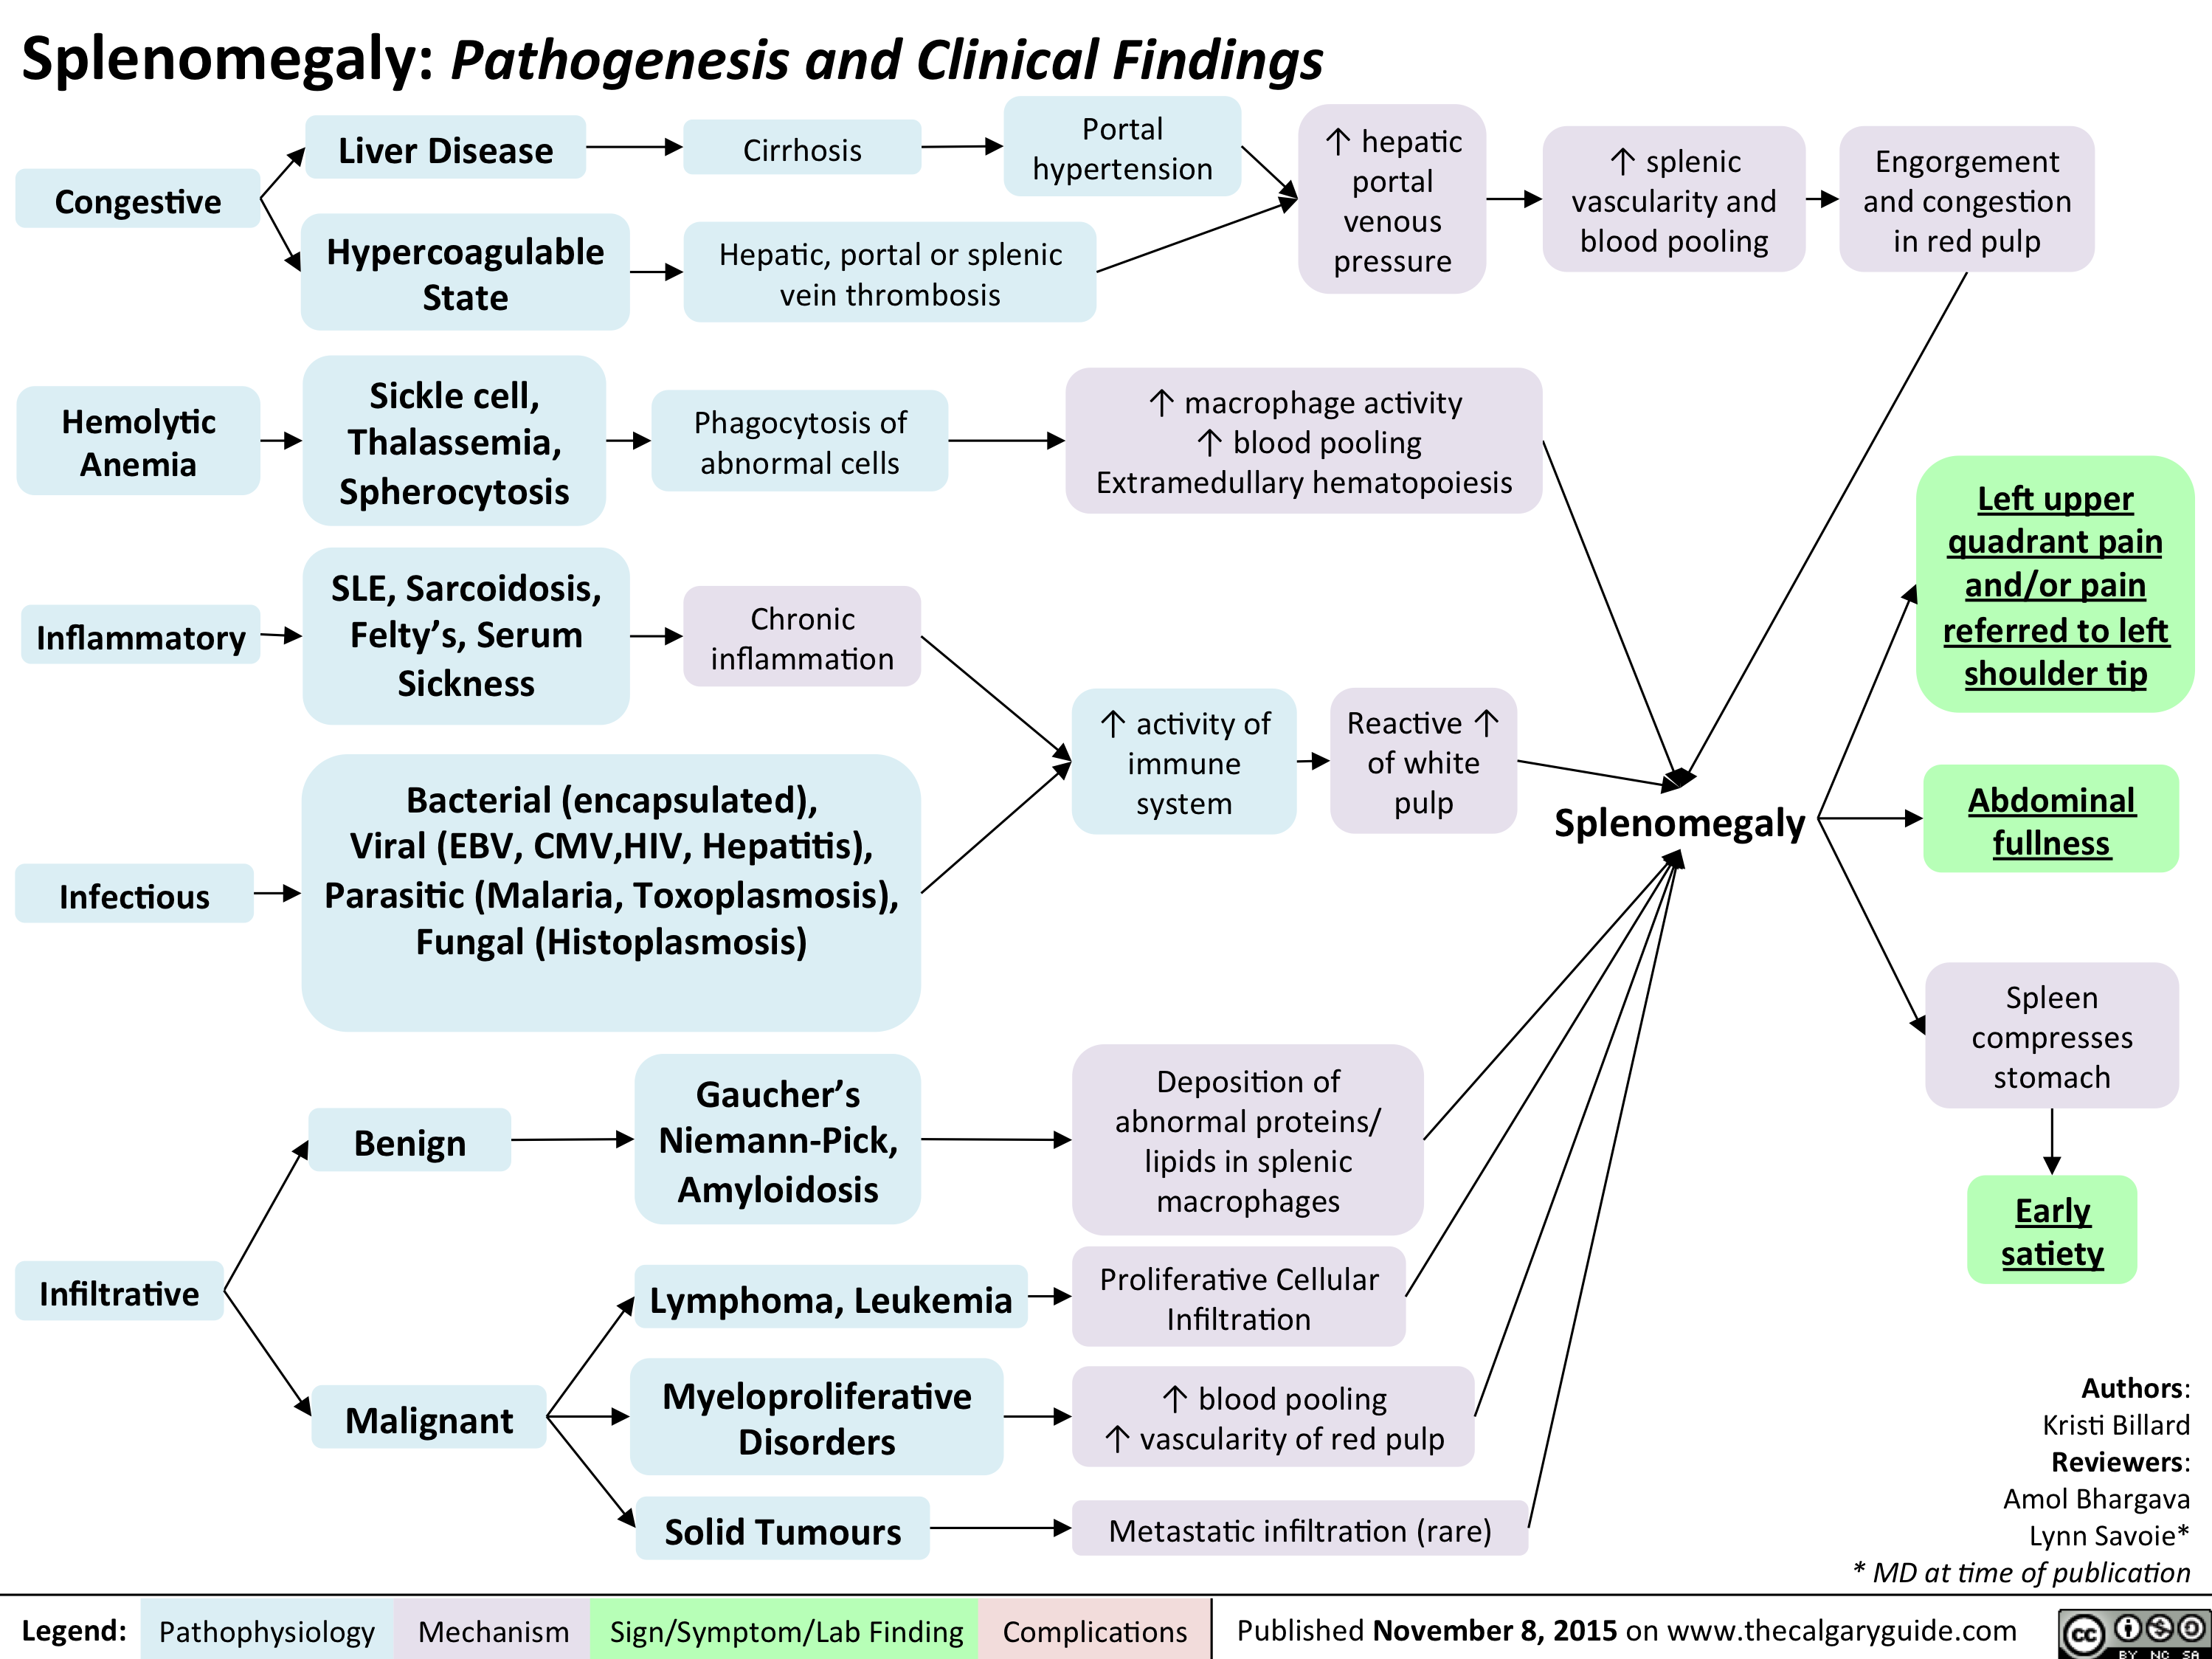 Splenomegaly - Pathogenesis and clinical findings